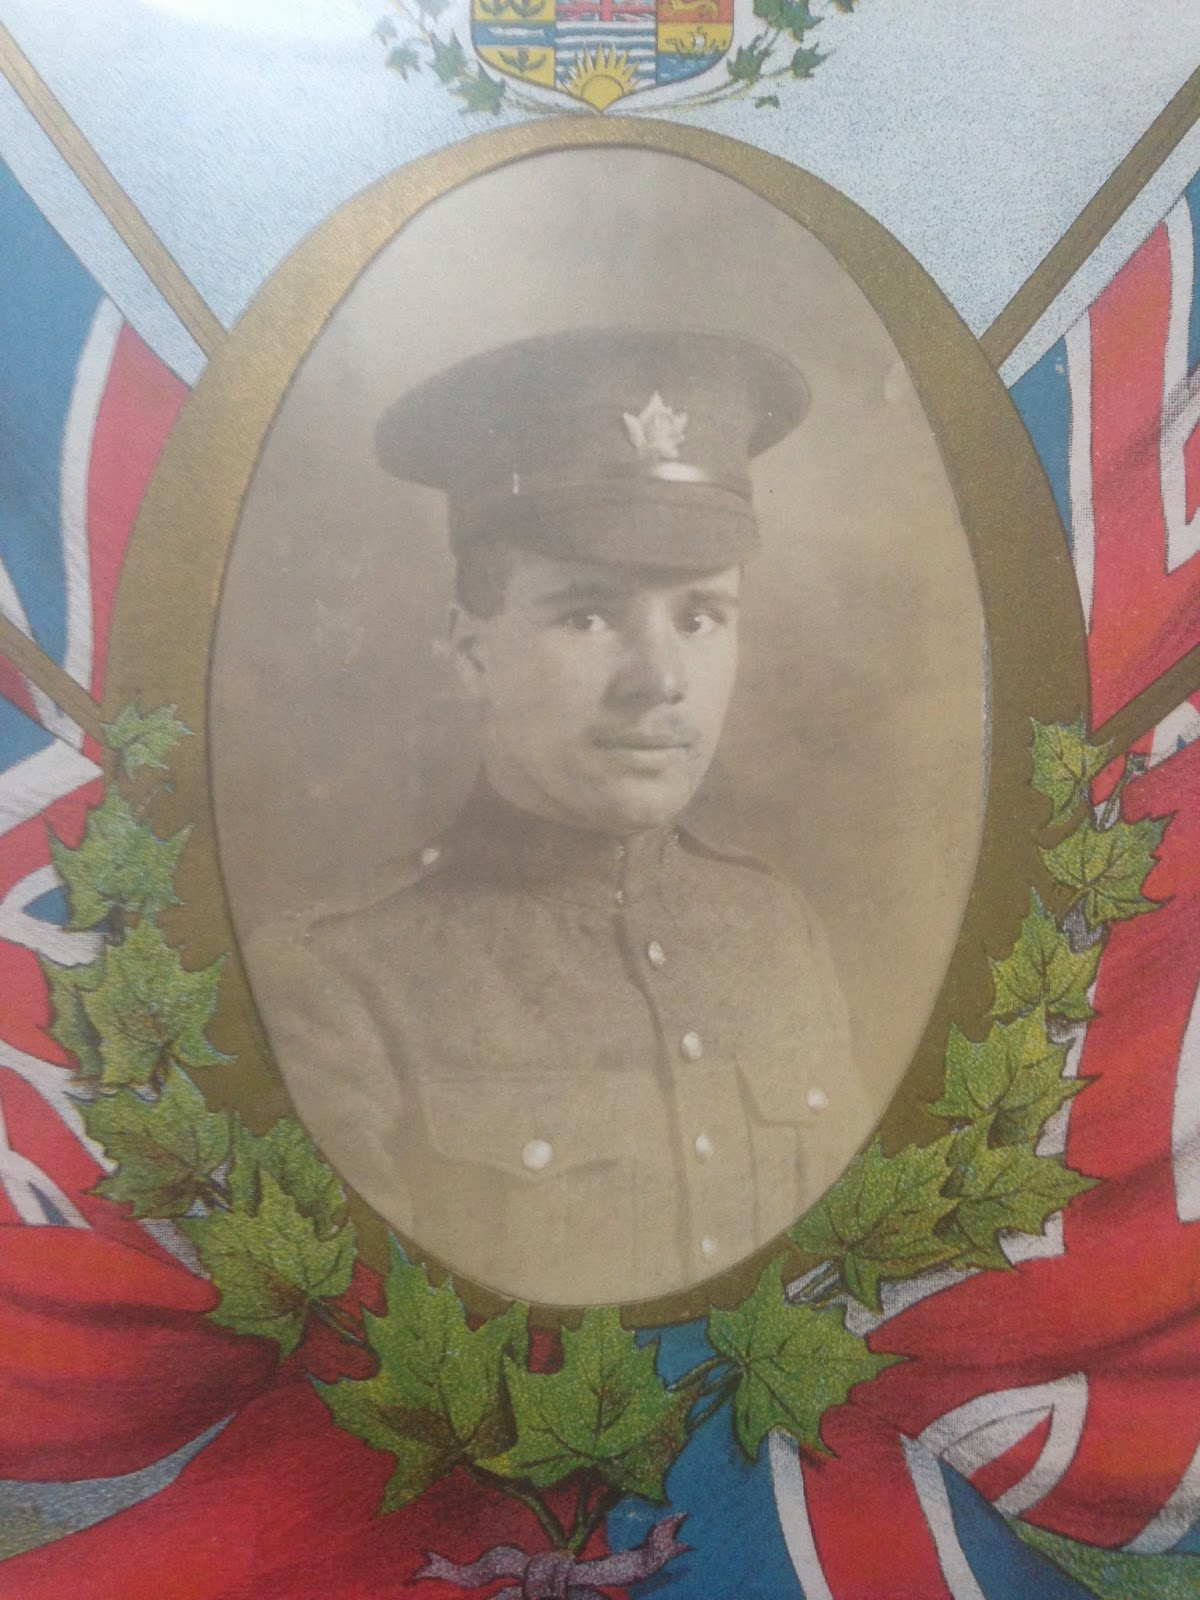 Remembering WW1 Soldier W. J. P. Bullock